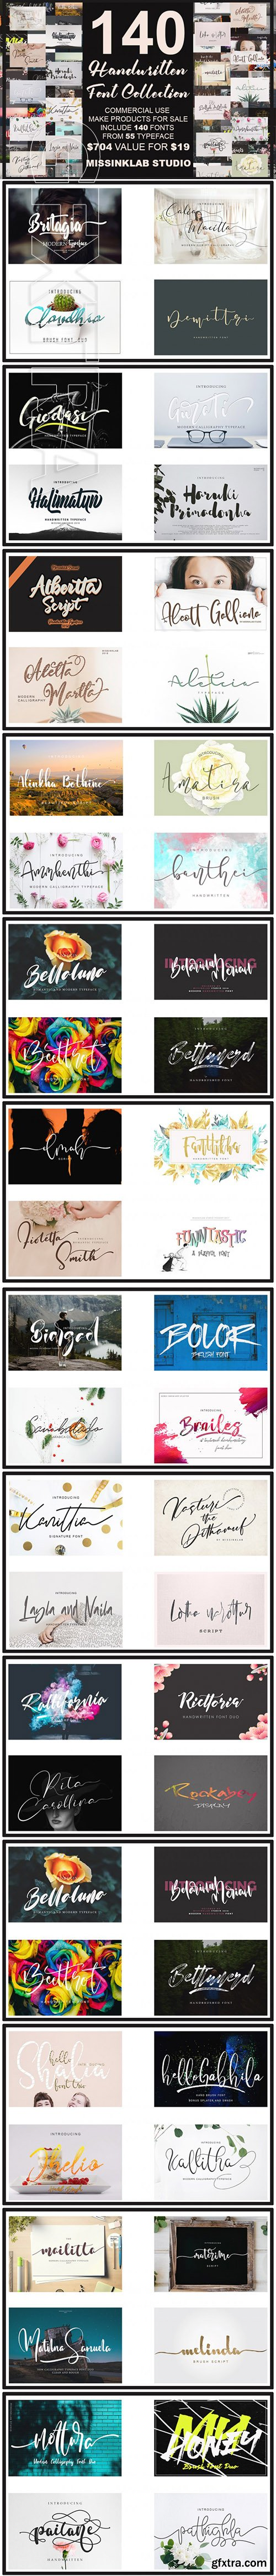 Mega Handwritten Fonts Collection